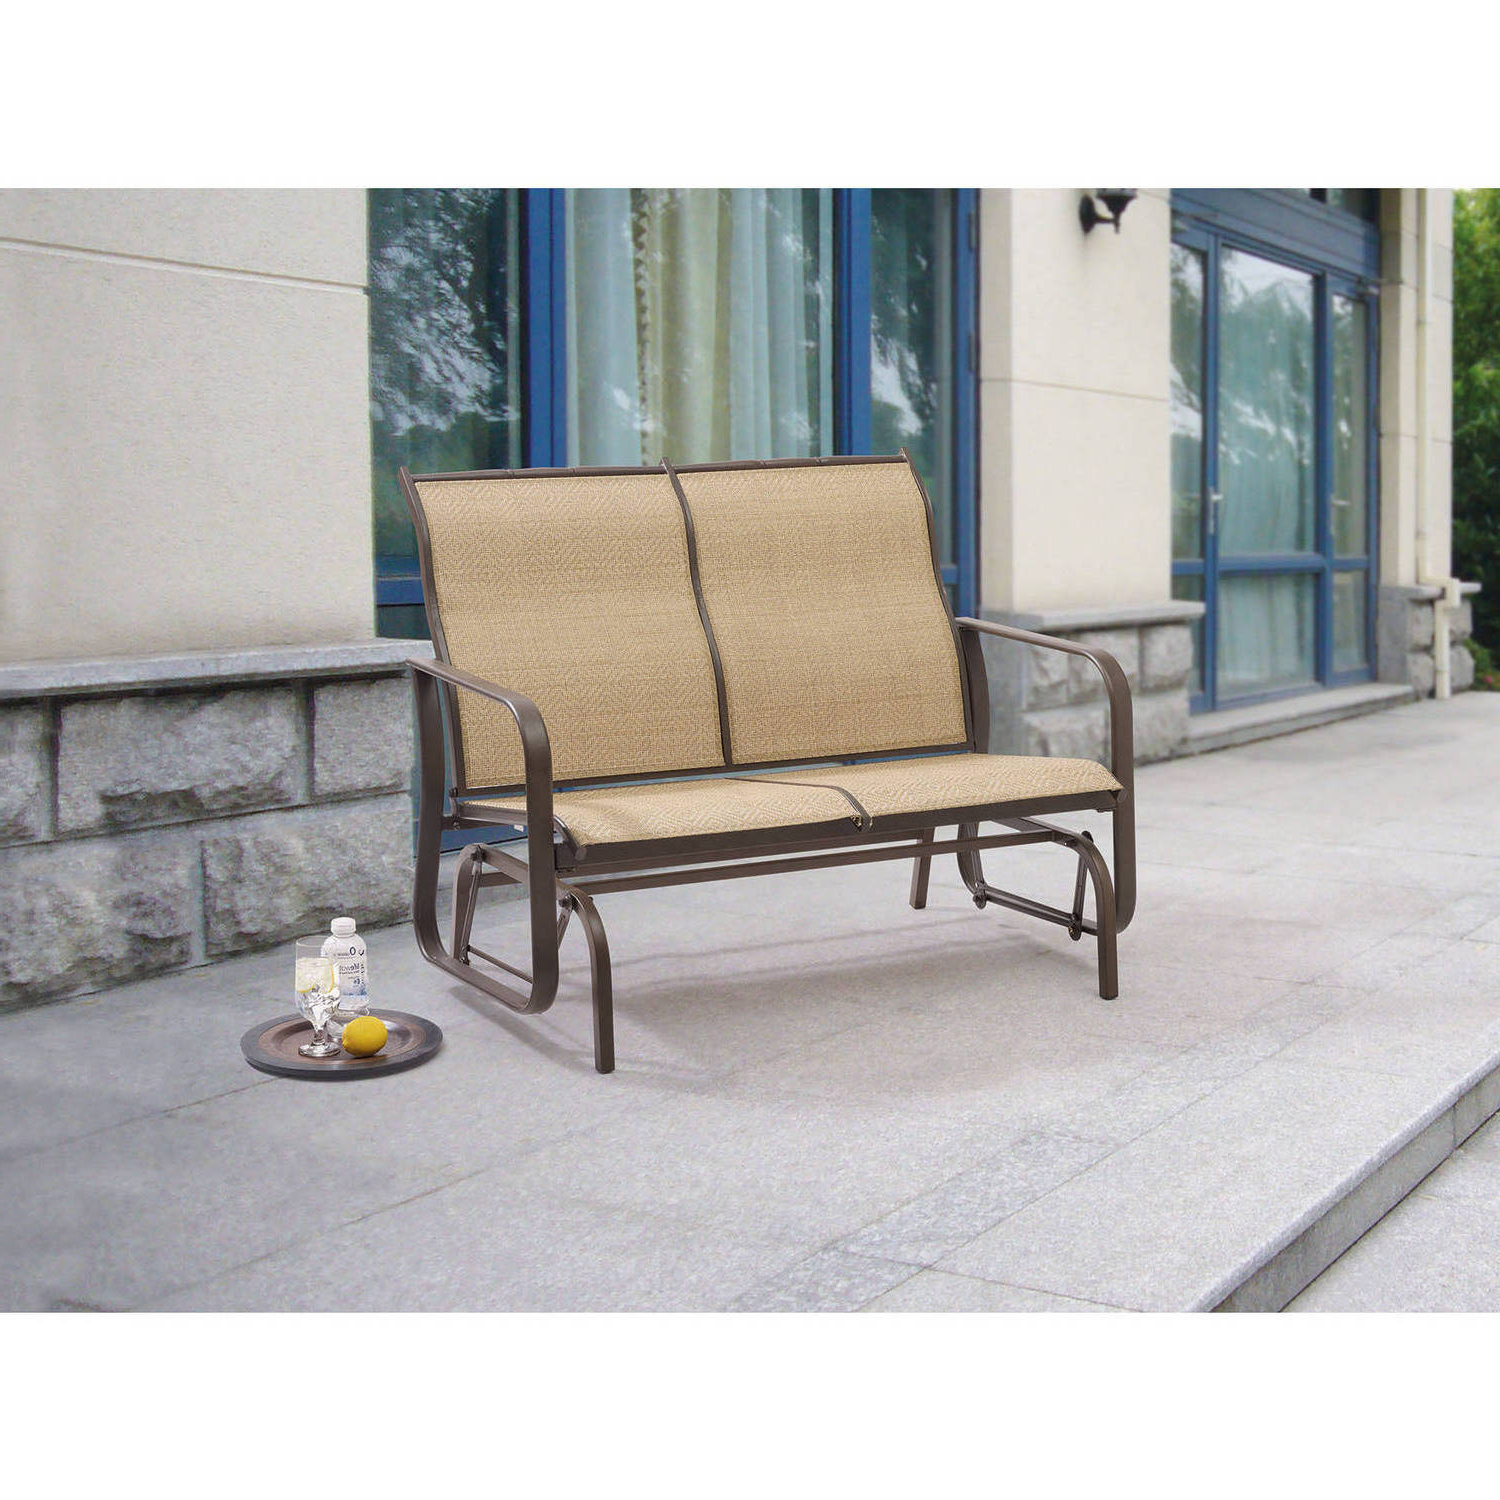 Preferred Mainstays Wesley Creek 2 Seat Outdoor Sling Seat Glider – Walmart Throughout Outdoor Swing Glider Chairs With Powder Coated Steel Frame (View 24 of 30)